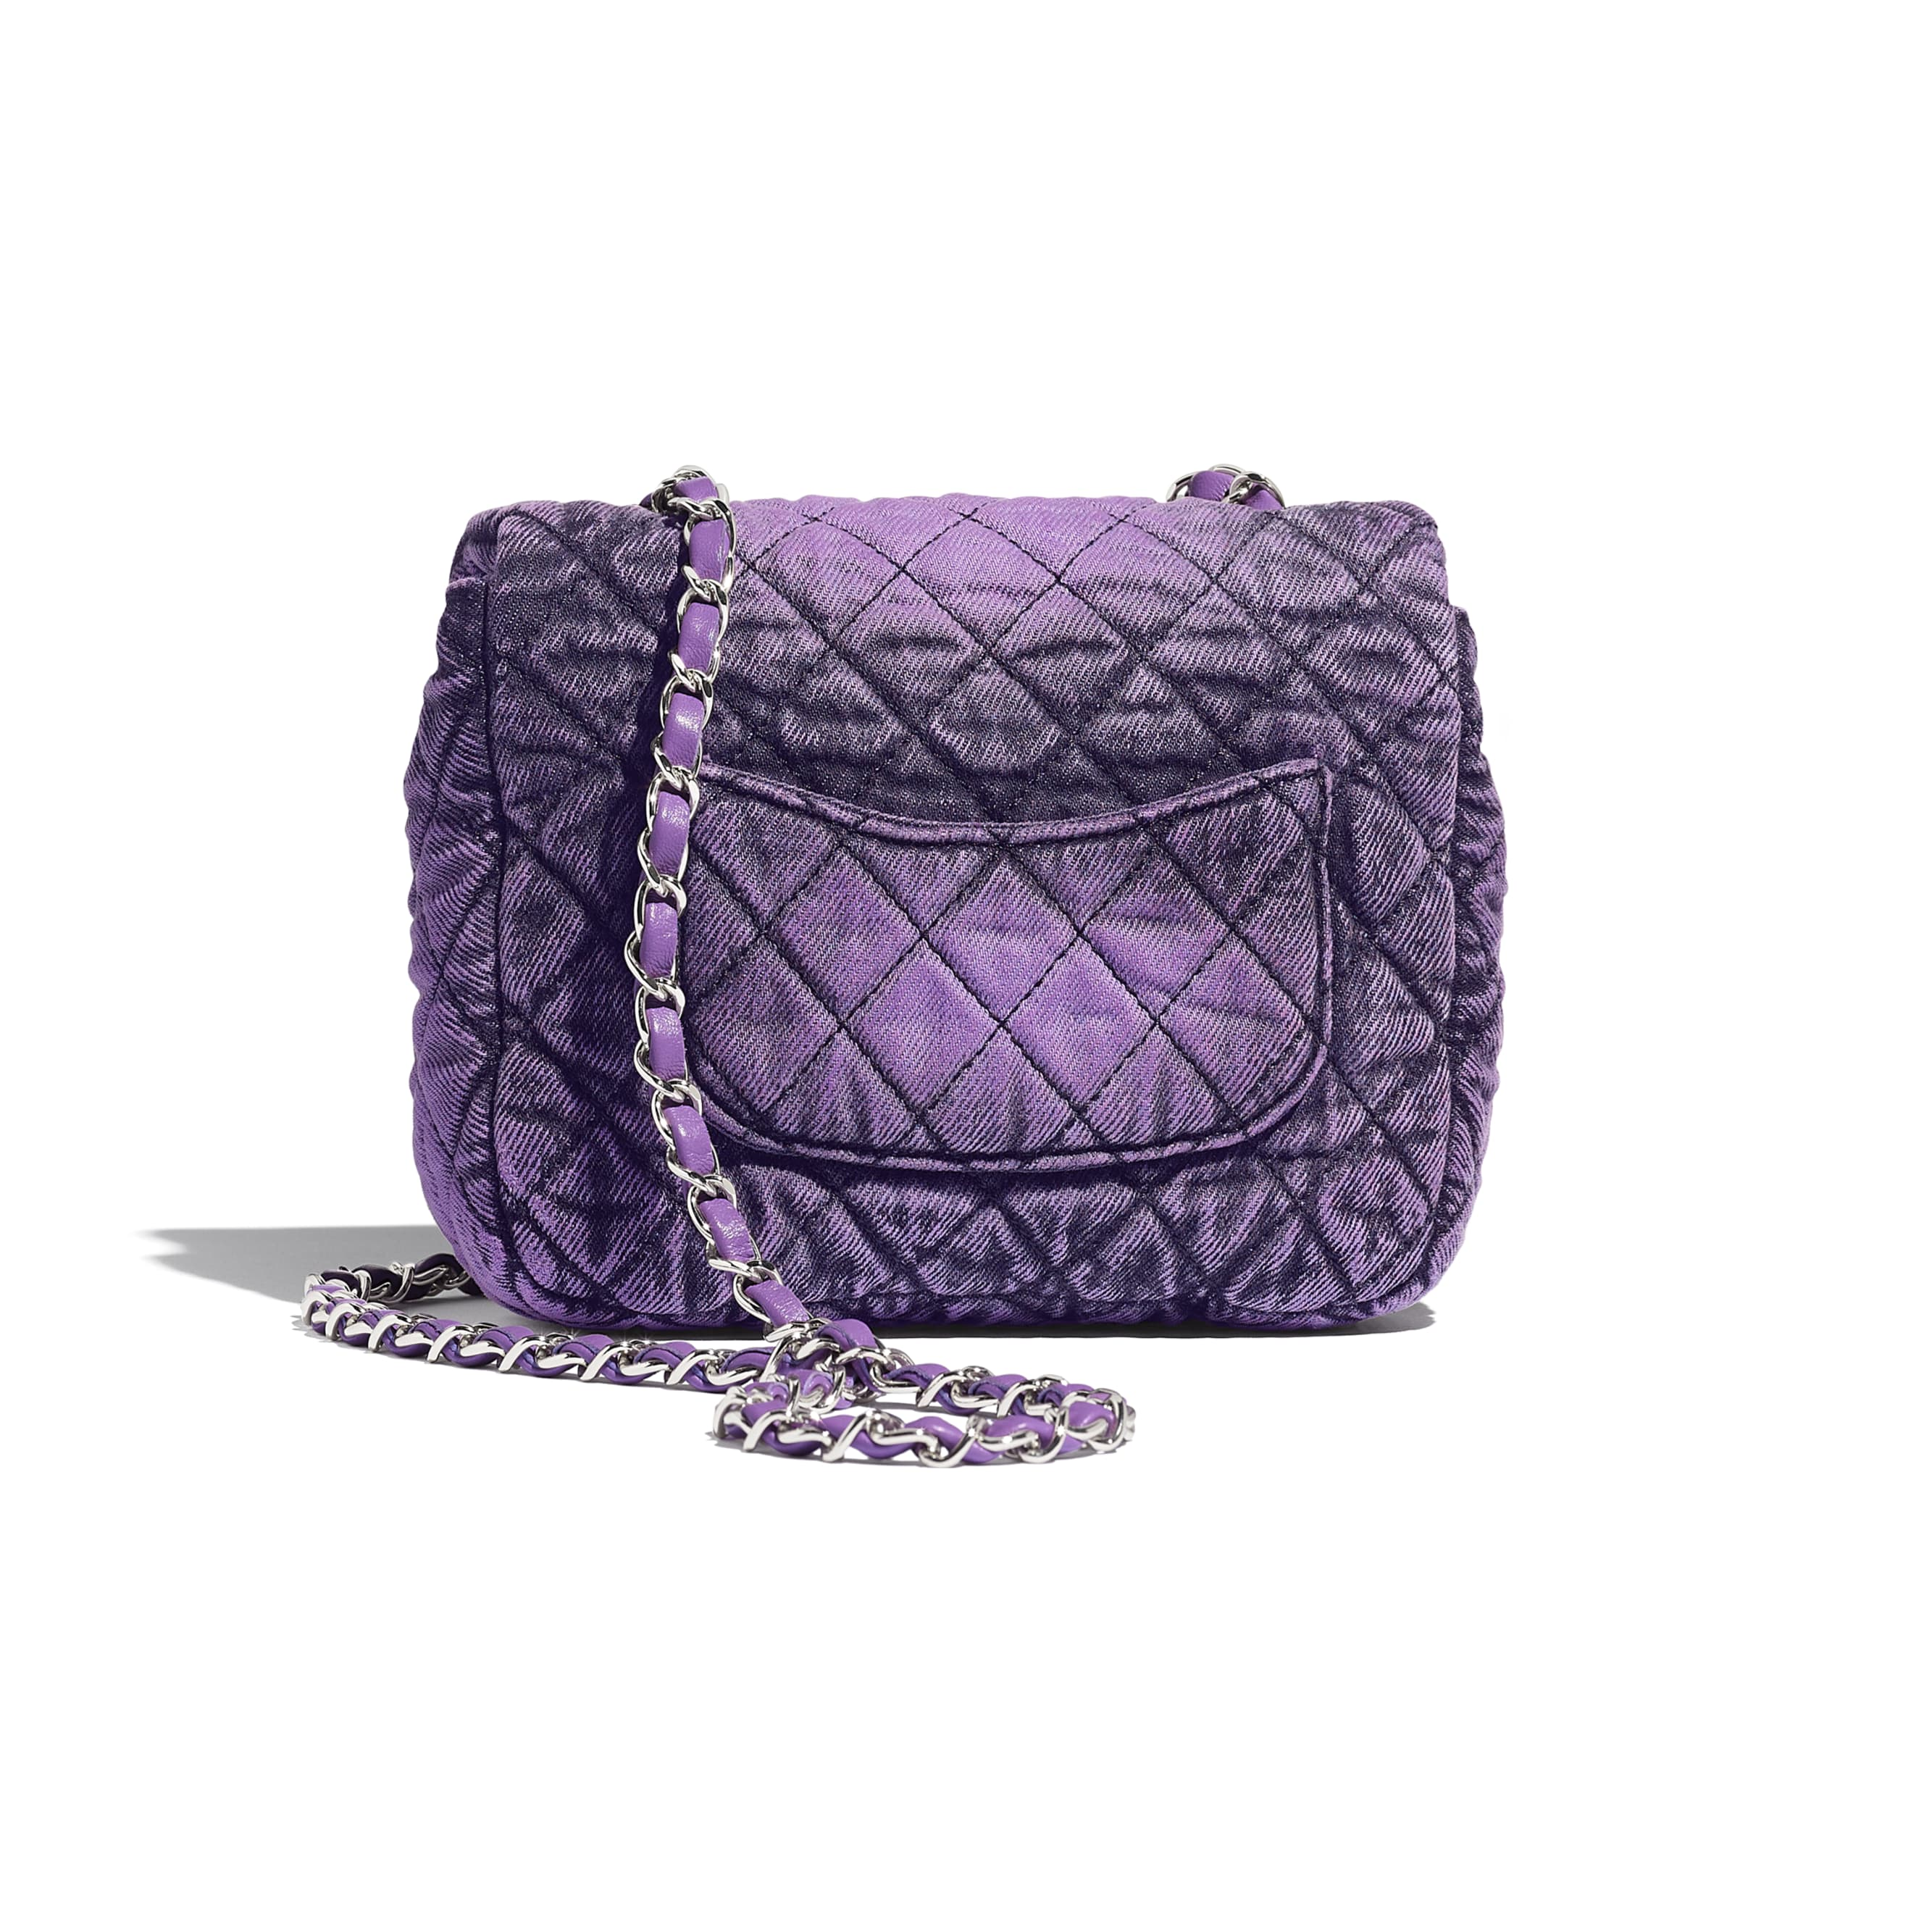 Small Flap Bag - Purple & Black - Denim & Silver-Tone Metal - CHANEL - Alternative view - see standard sized version